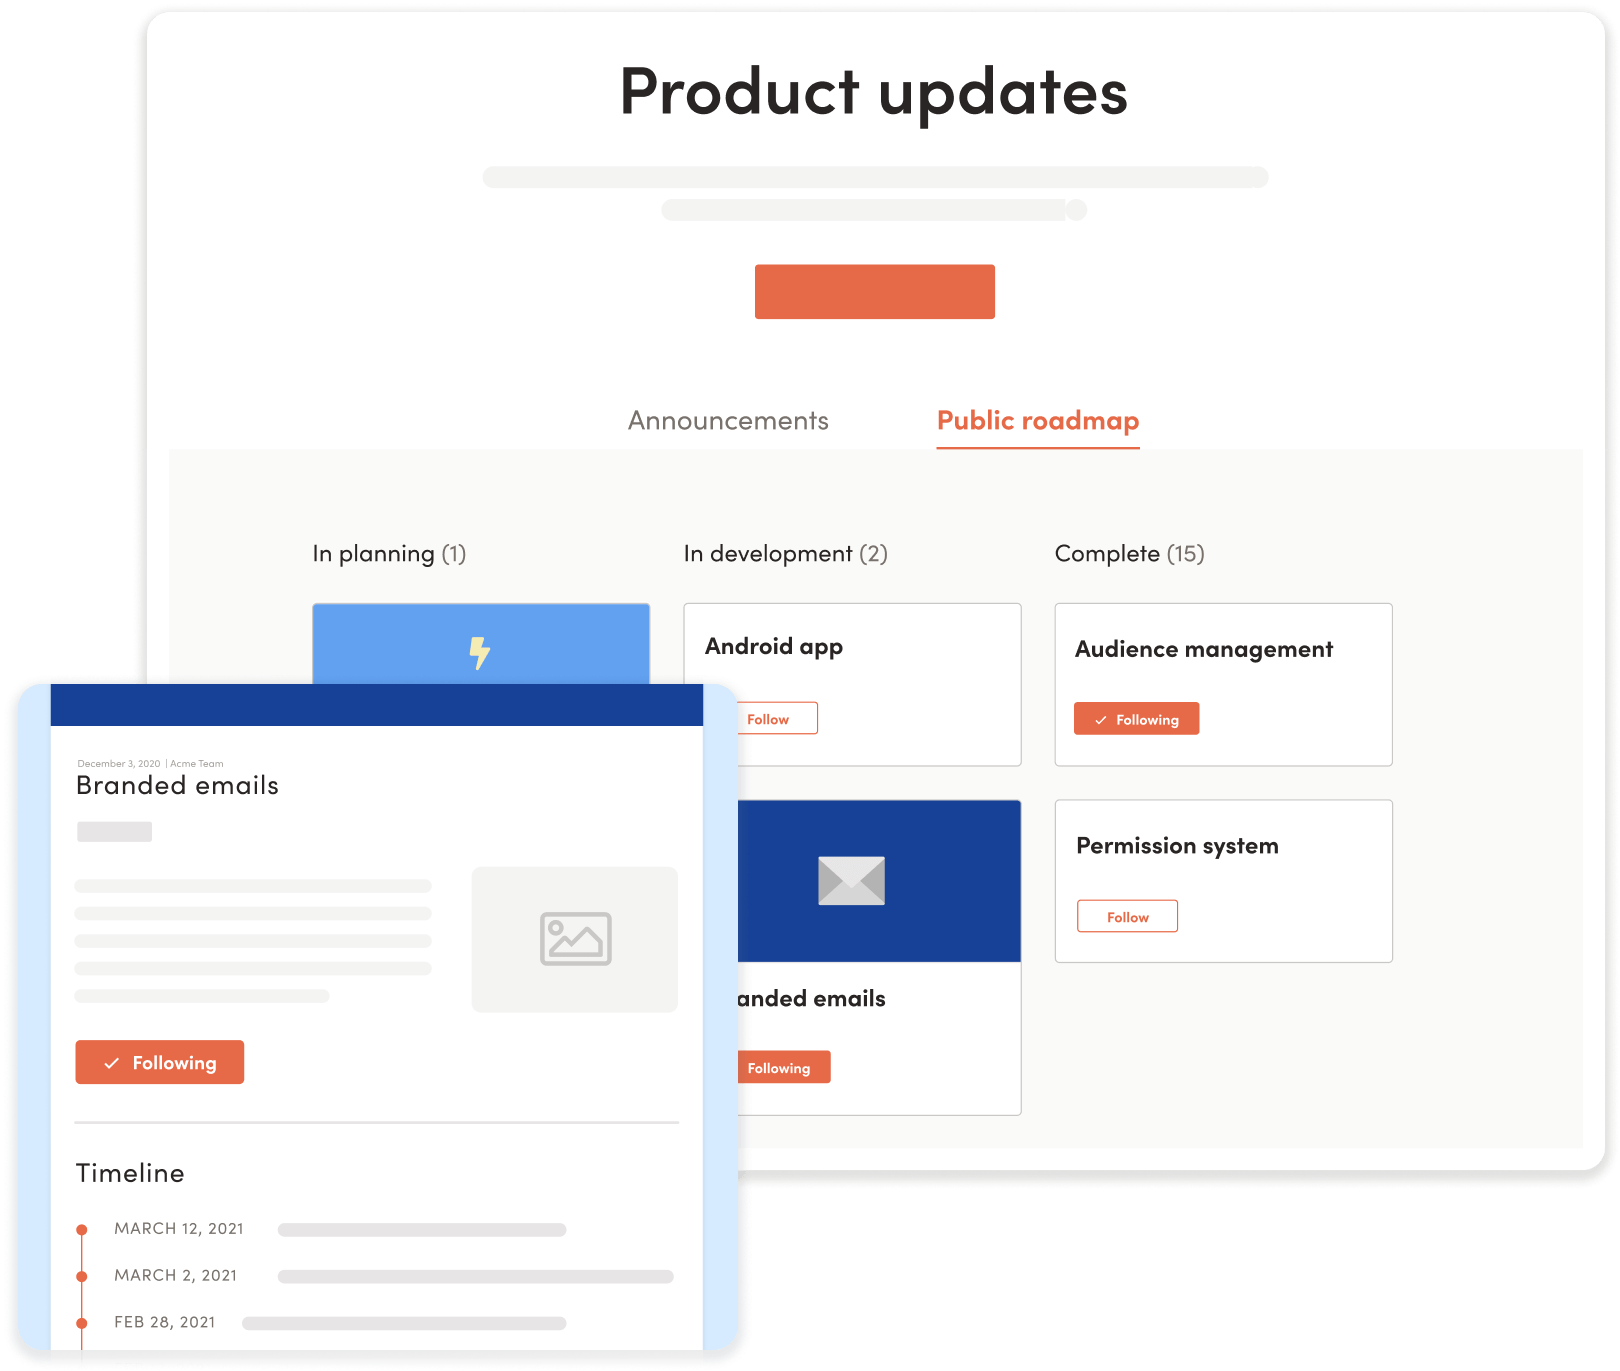 LaunchNotes release pages